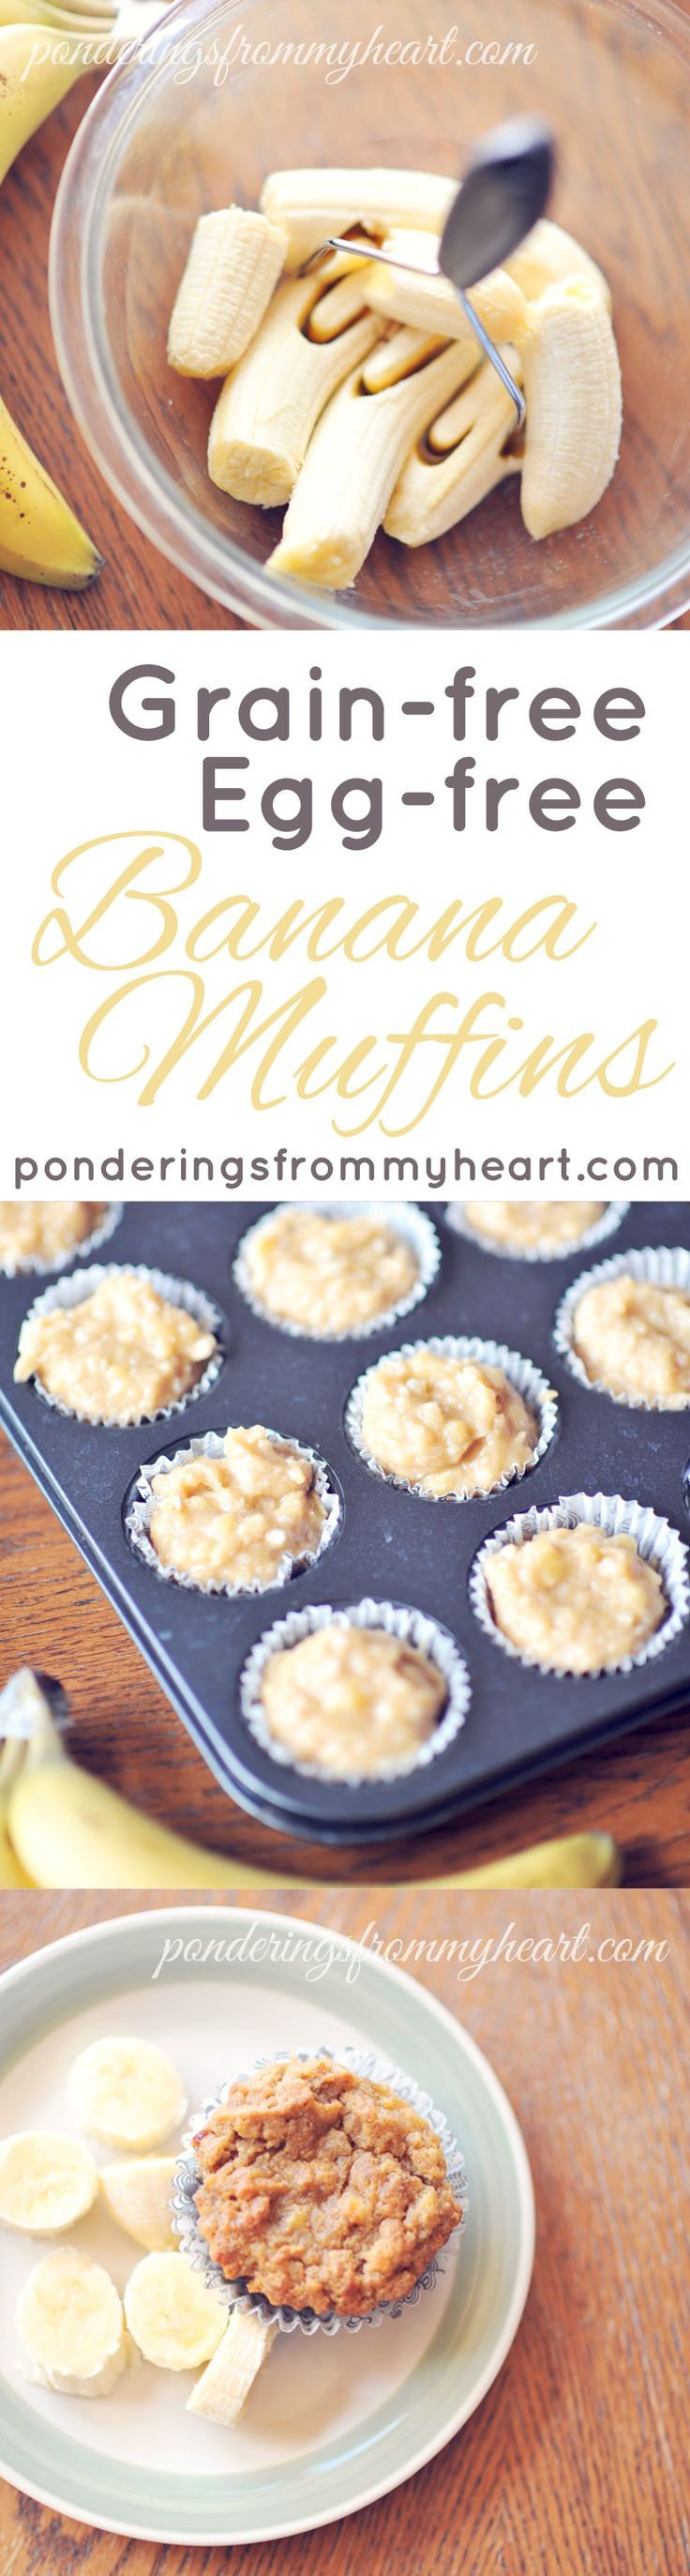 Banana Muffins | Grain-free and Egg-free